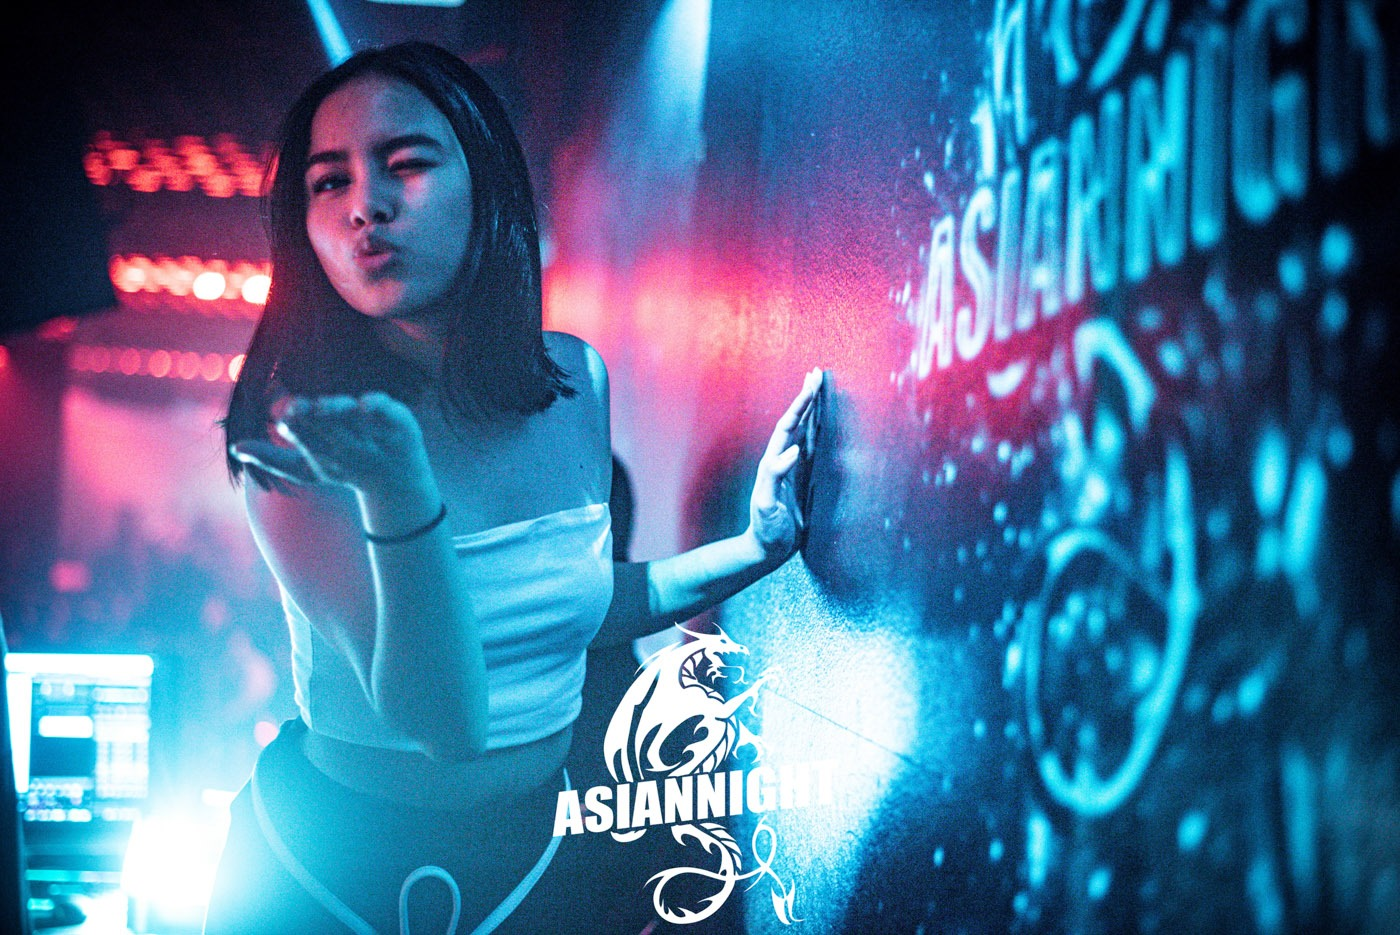 Events Wien: THE BIG ASIANNIGHT SPECIAL – Next day is a holiday